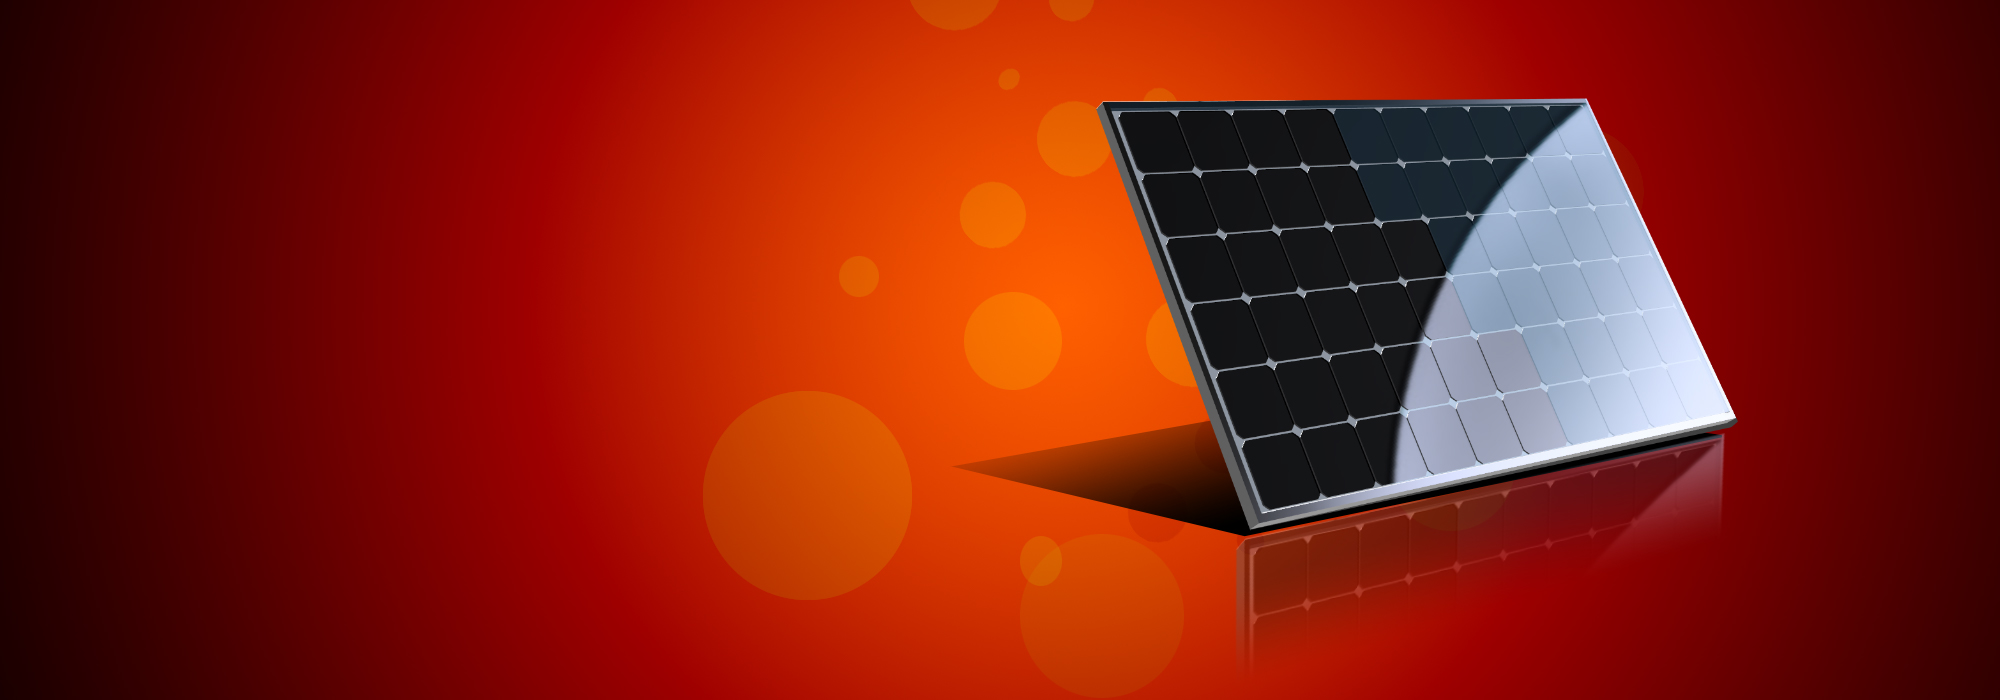 https://www.solargain.com.au/sites/default/files/revslider/image/hp-bg-solar-new.jpg